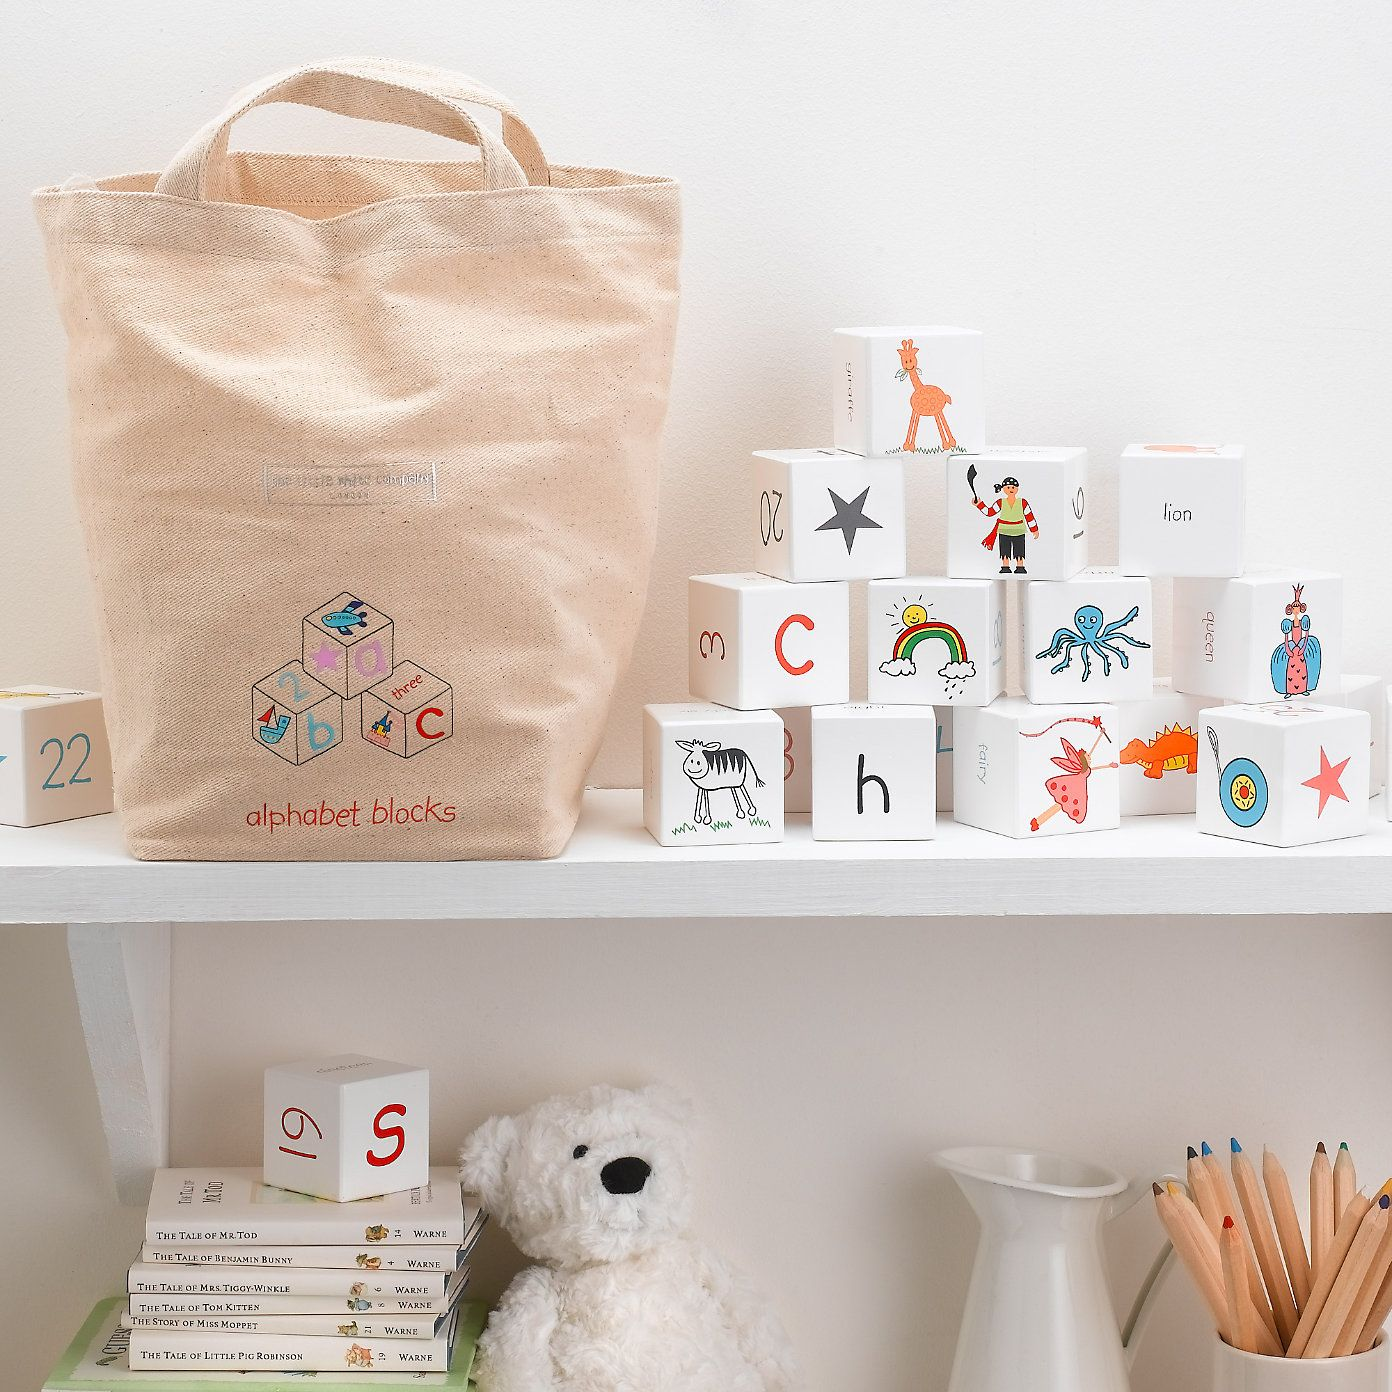 Pin By Ivana Beckett On Kids Rooms Little White Company The White Company Alphabet Blocks